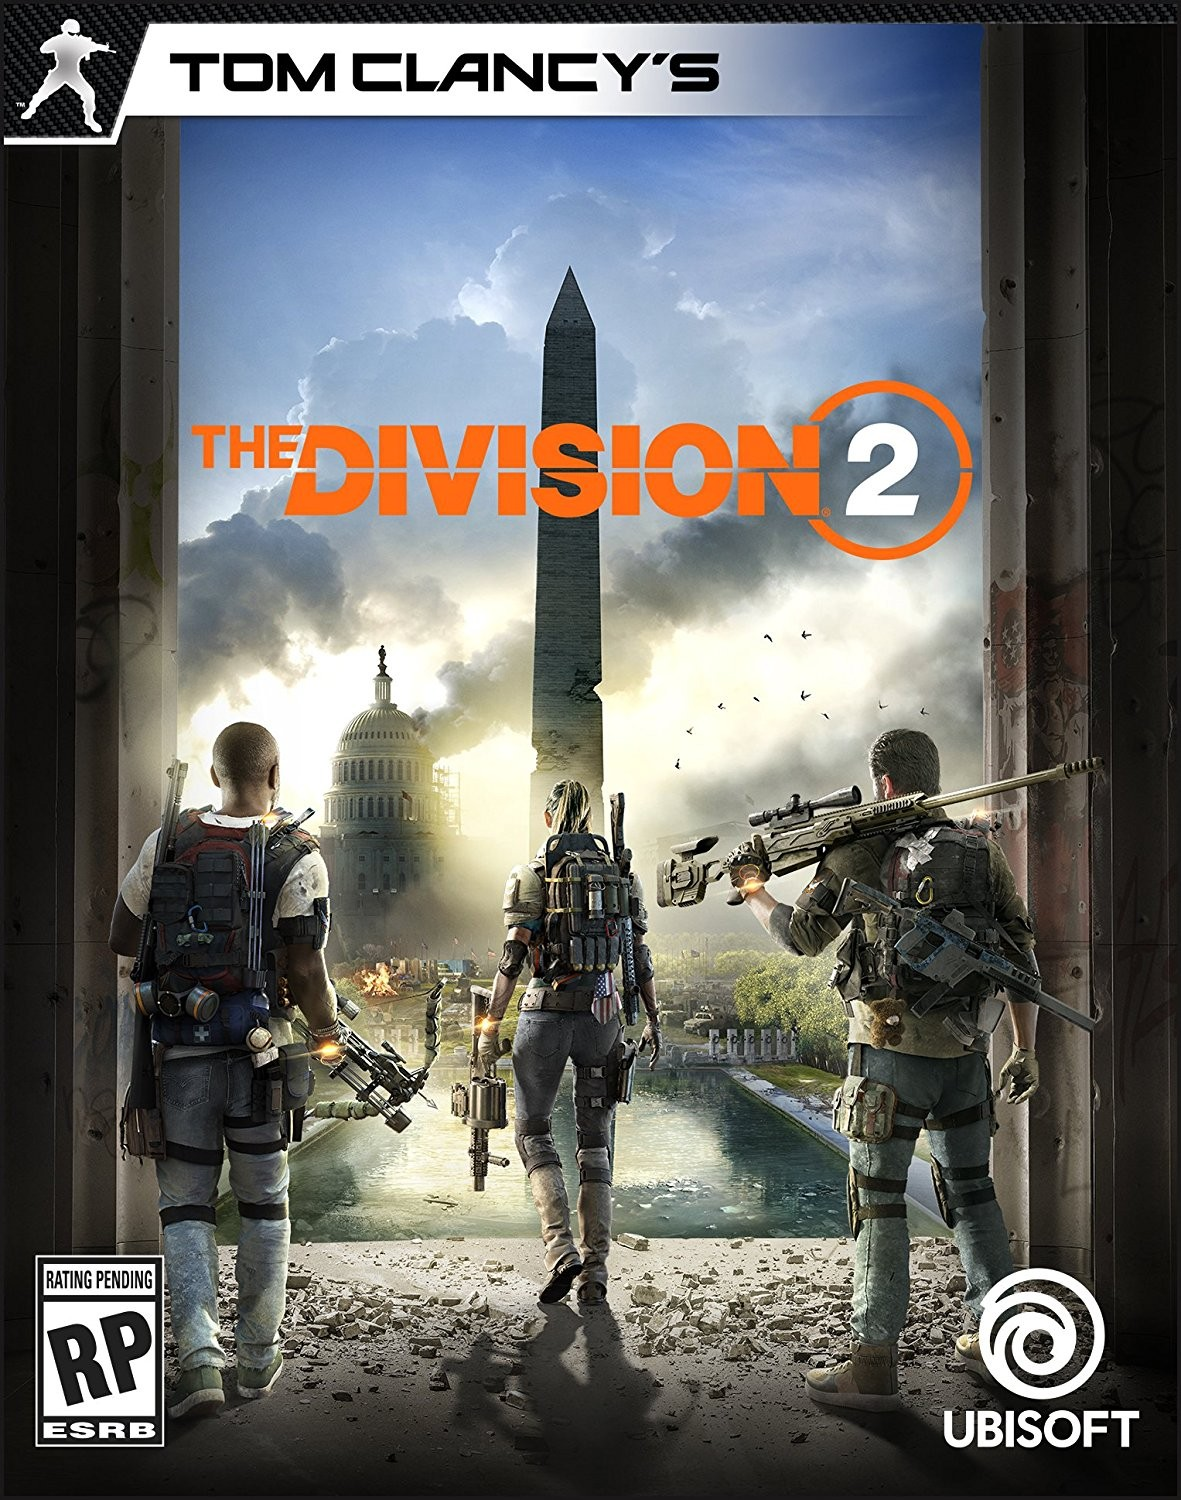 Tom Clancy's The Division 2 全境封锁2